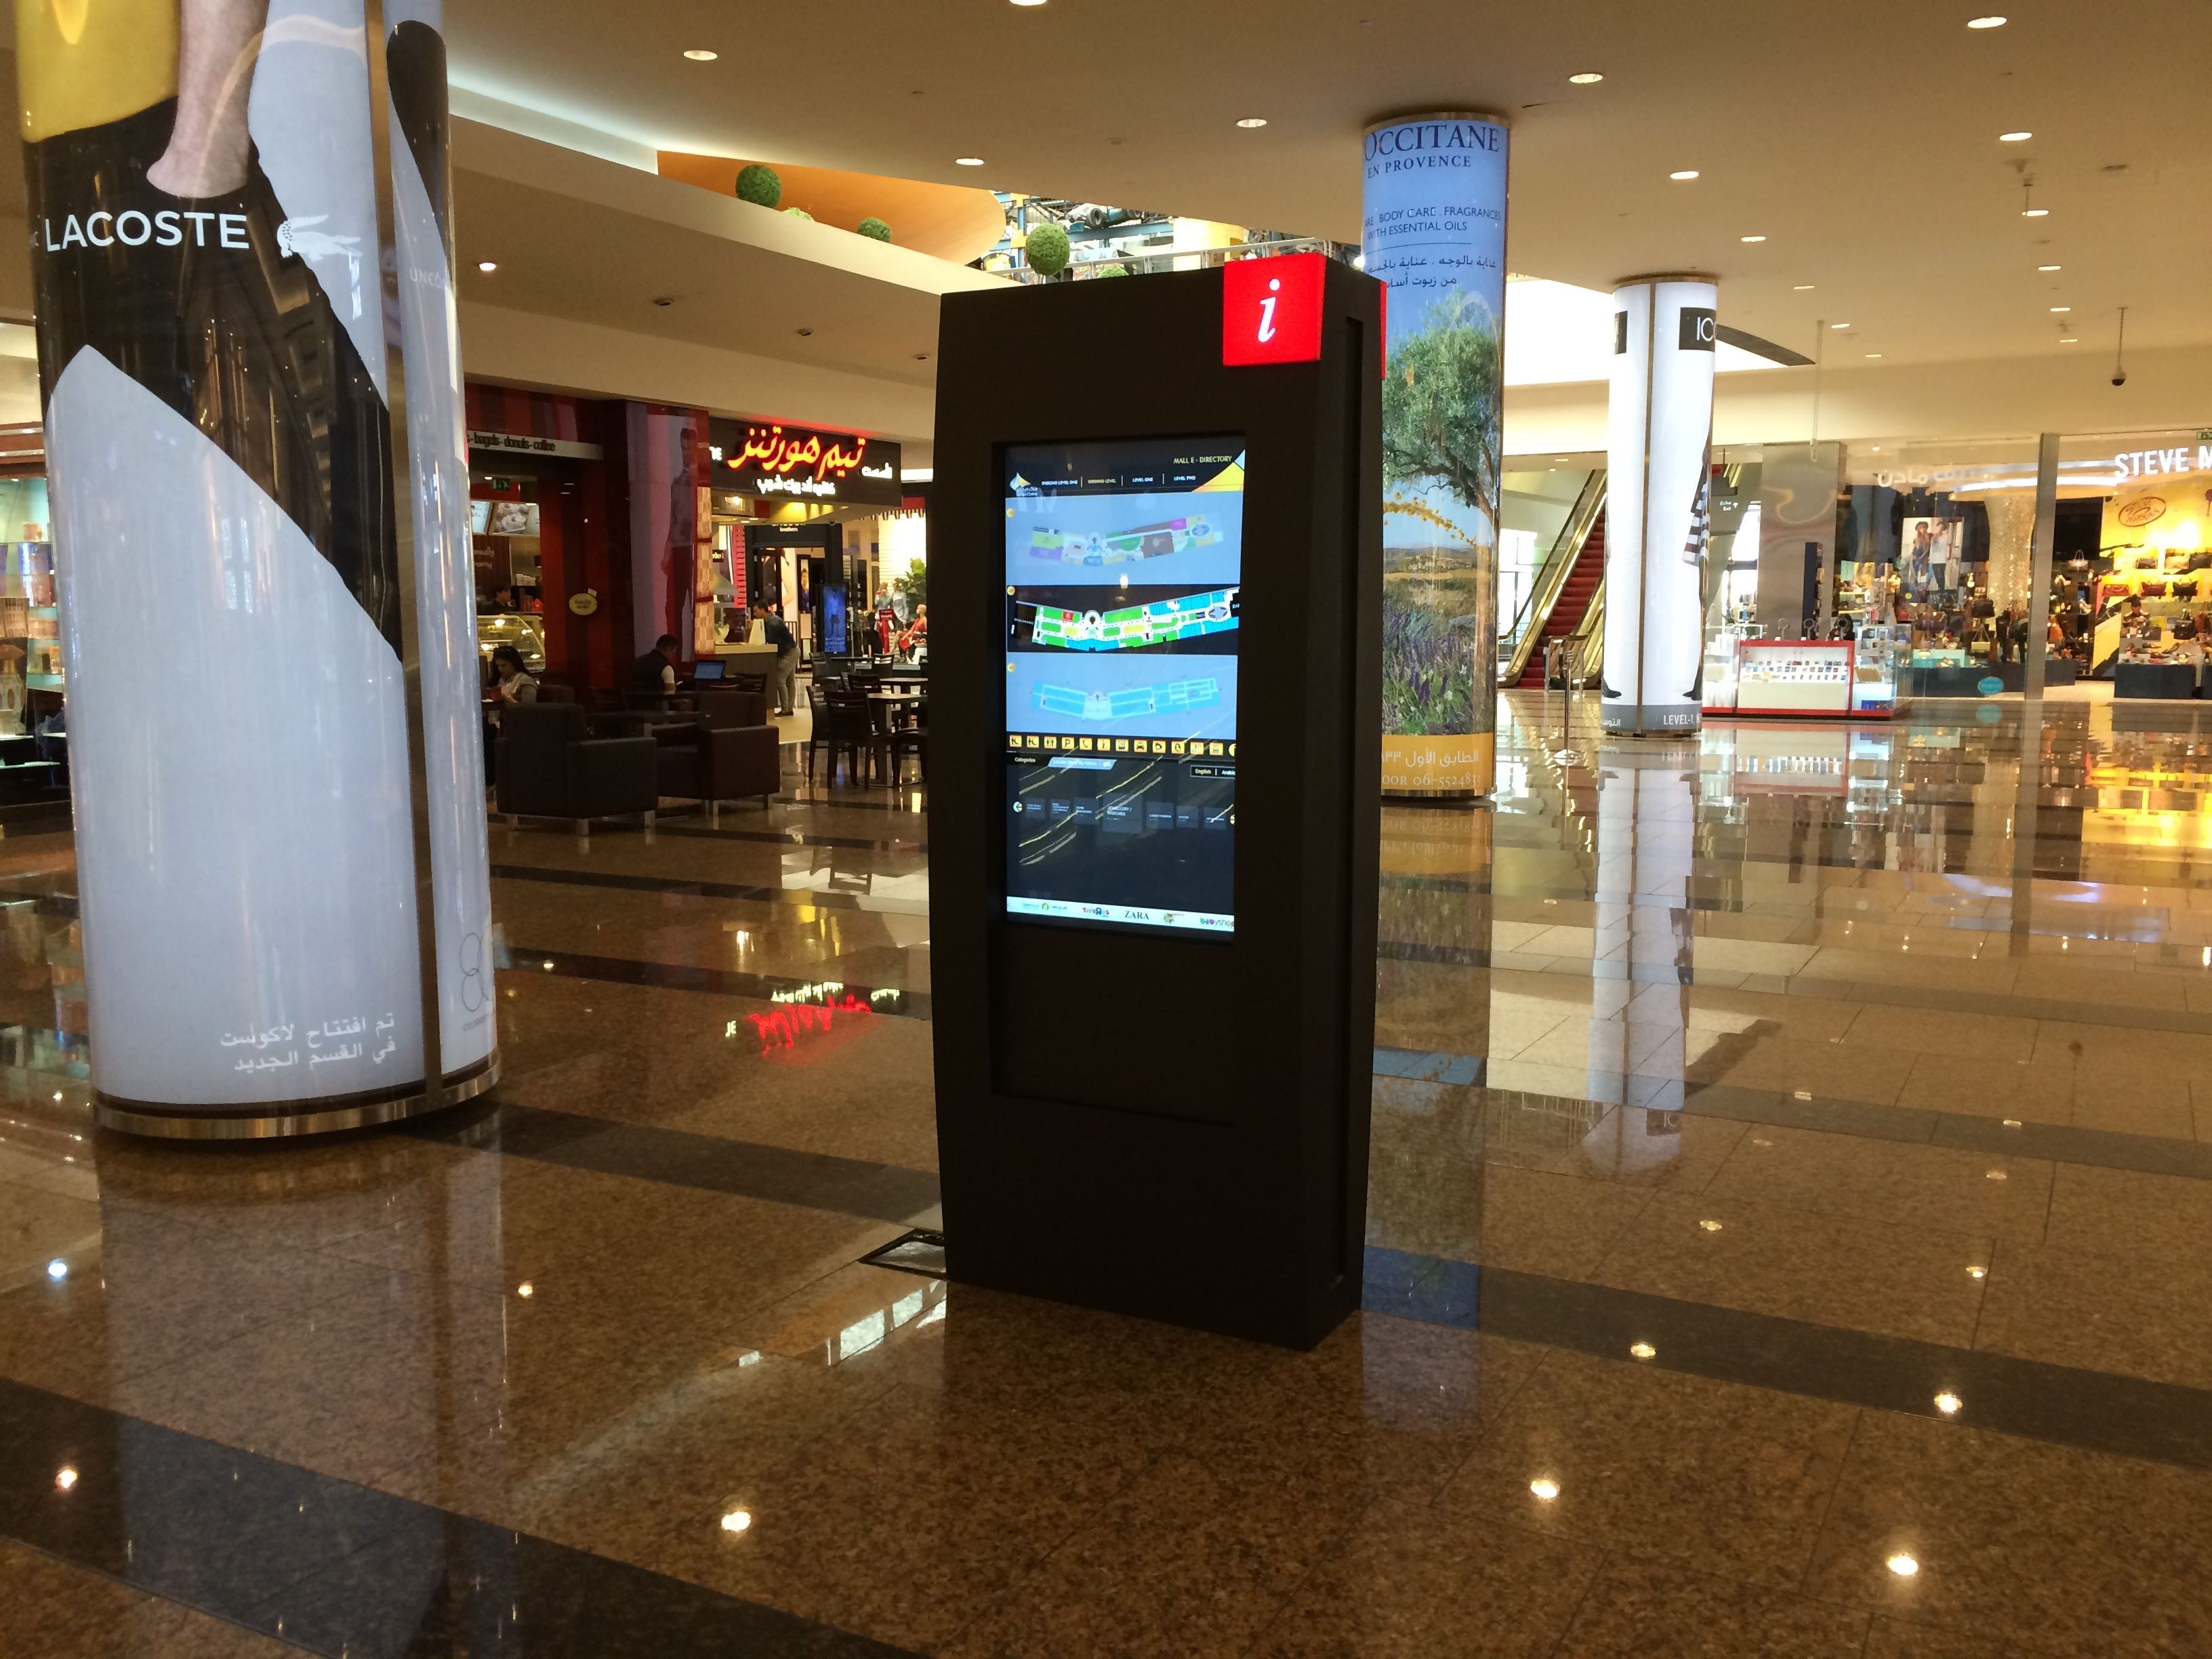 Sahara Center Interactive Wayfinding